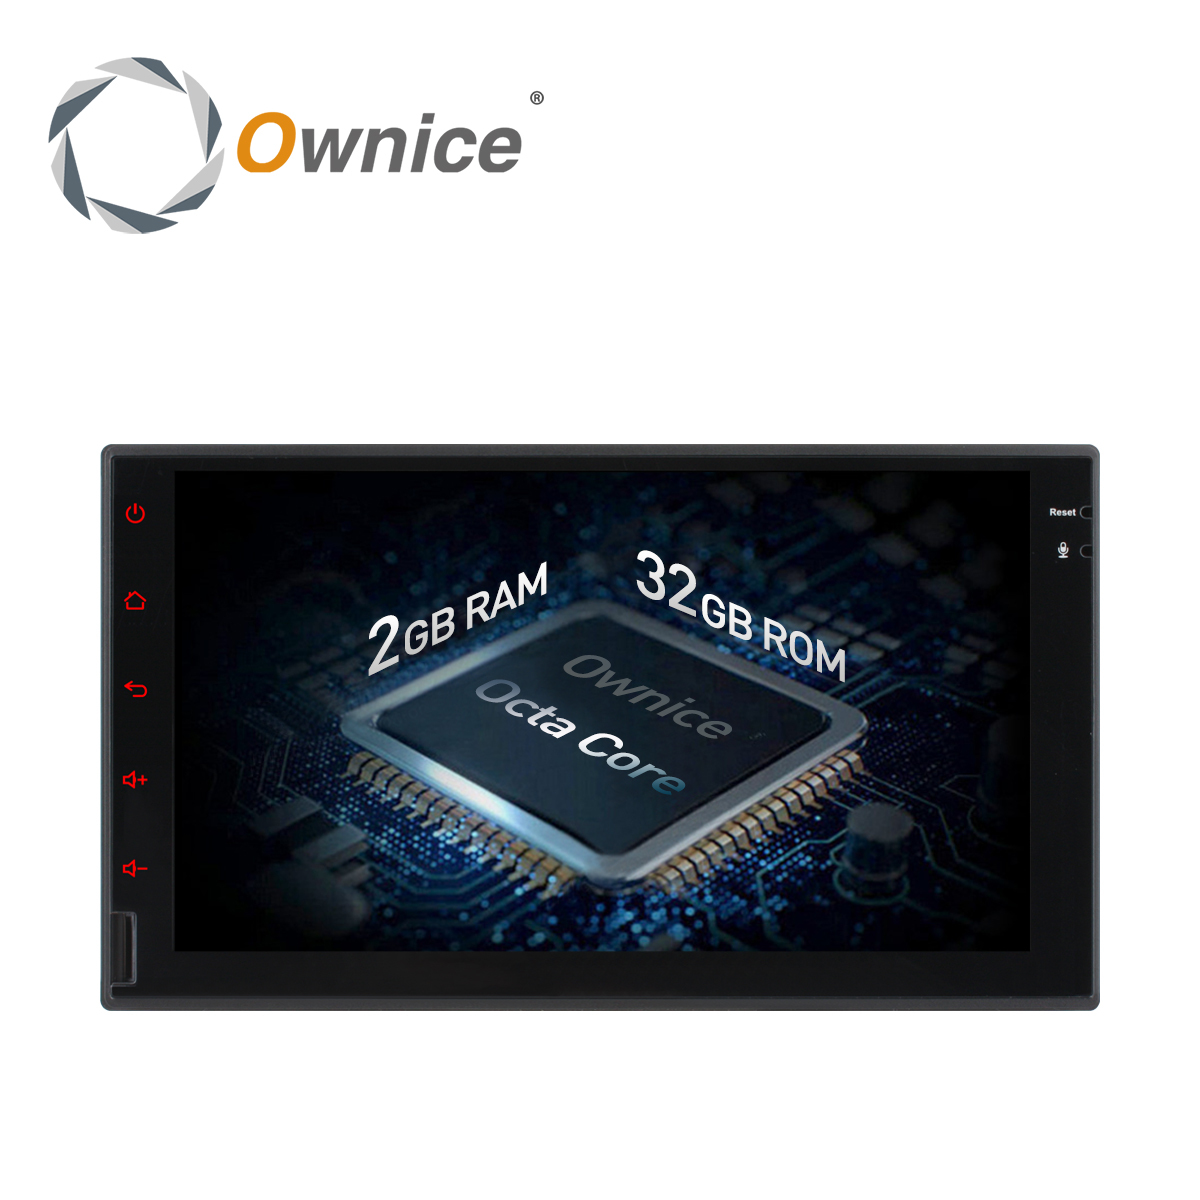 Ownice C500 Android 6 0 Octa 8 Core 2G RAM Support 4G DAB DVR 32G ROM